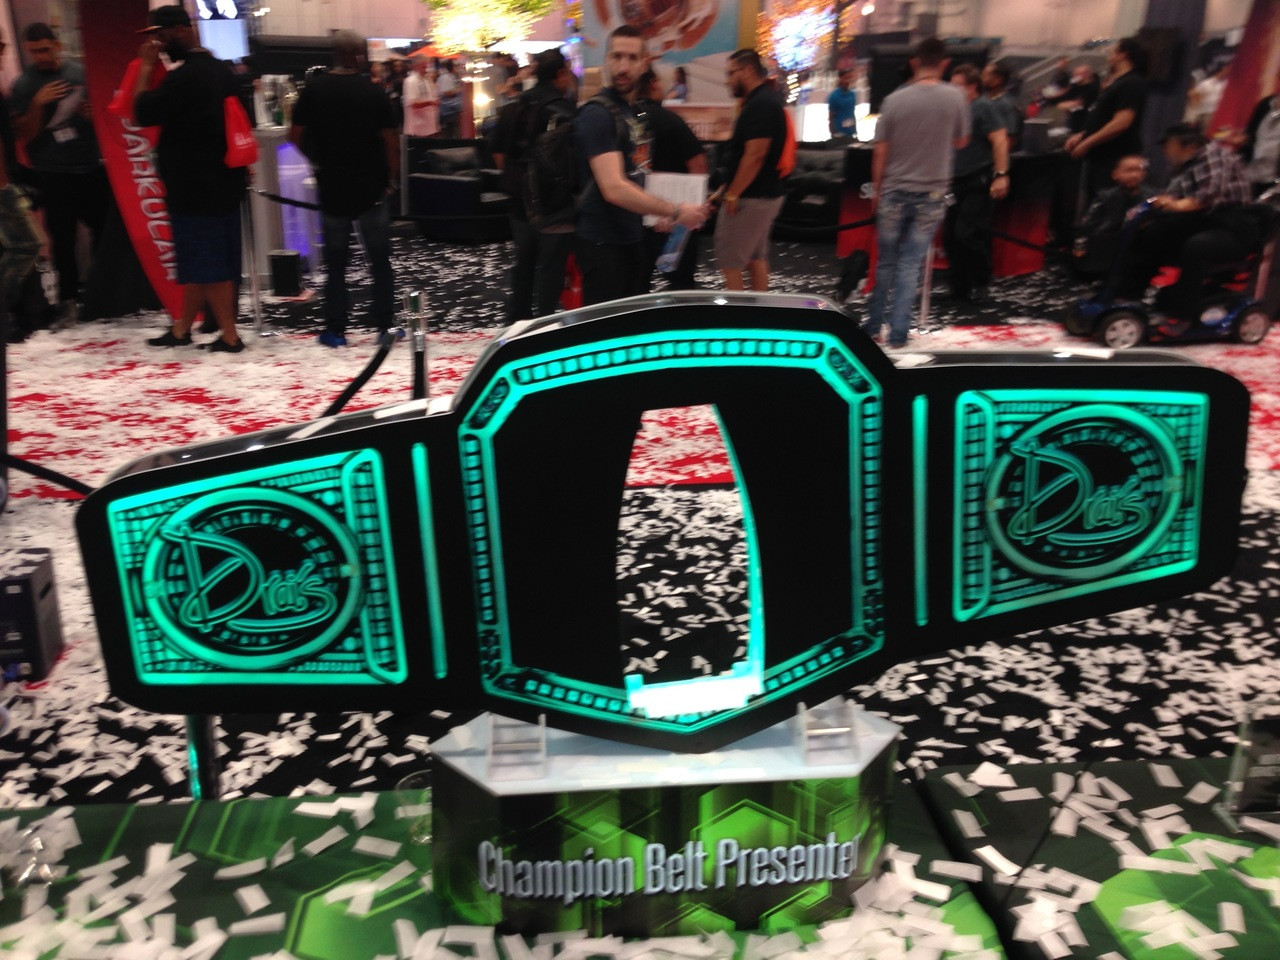 Drais, Nightclub and bar Show,NCBShow,Champ,champion,Championship,title,belt,LED,Champagne,Bottle,service,delivery,presenter,carrier,holder,caddy,tray,Custom,Made,Light Up,LED,LIV,Miami,Nightclubshop,VIP tray